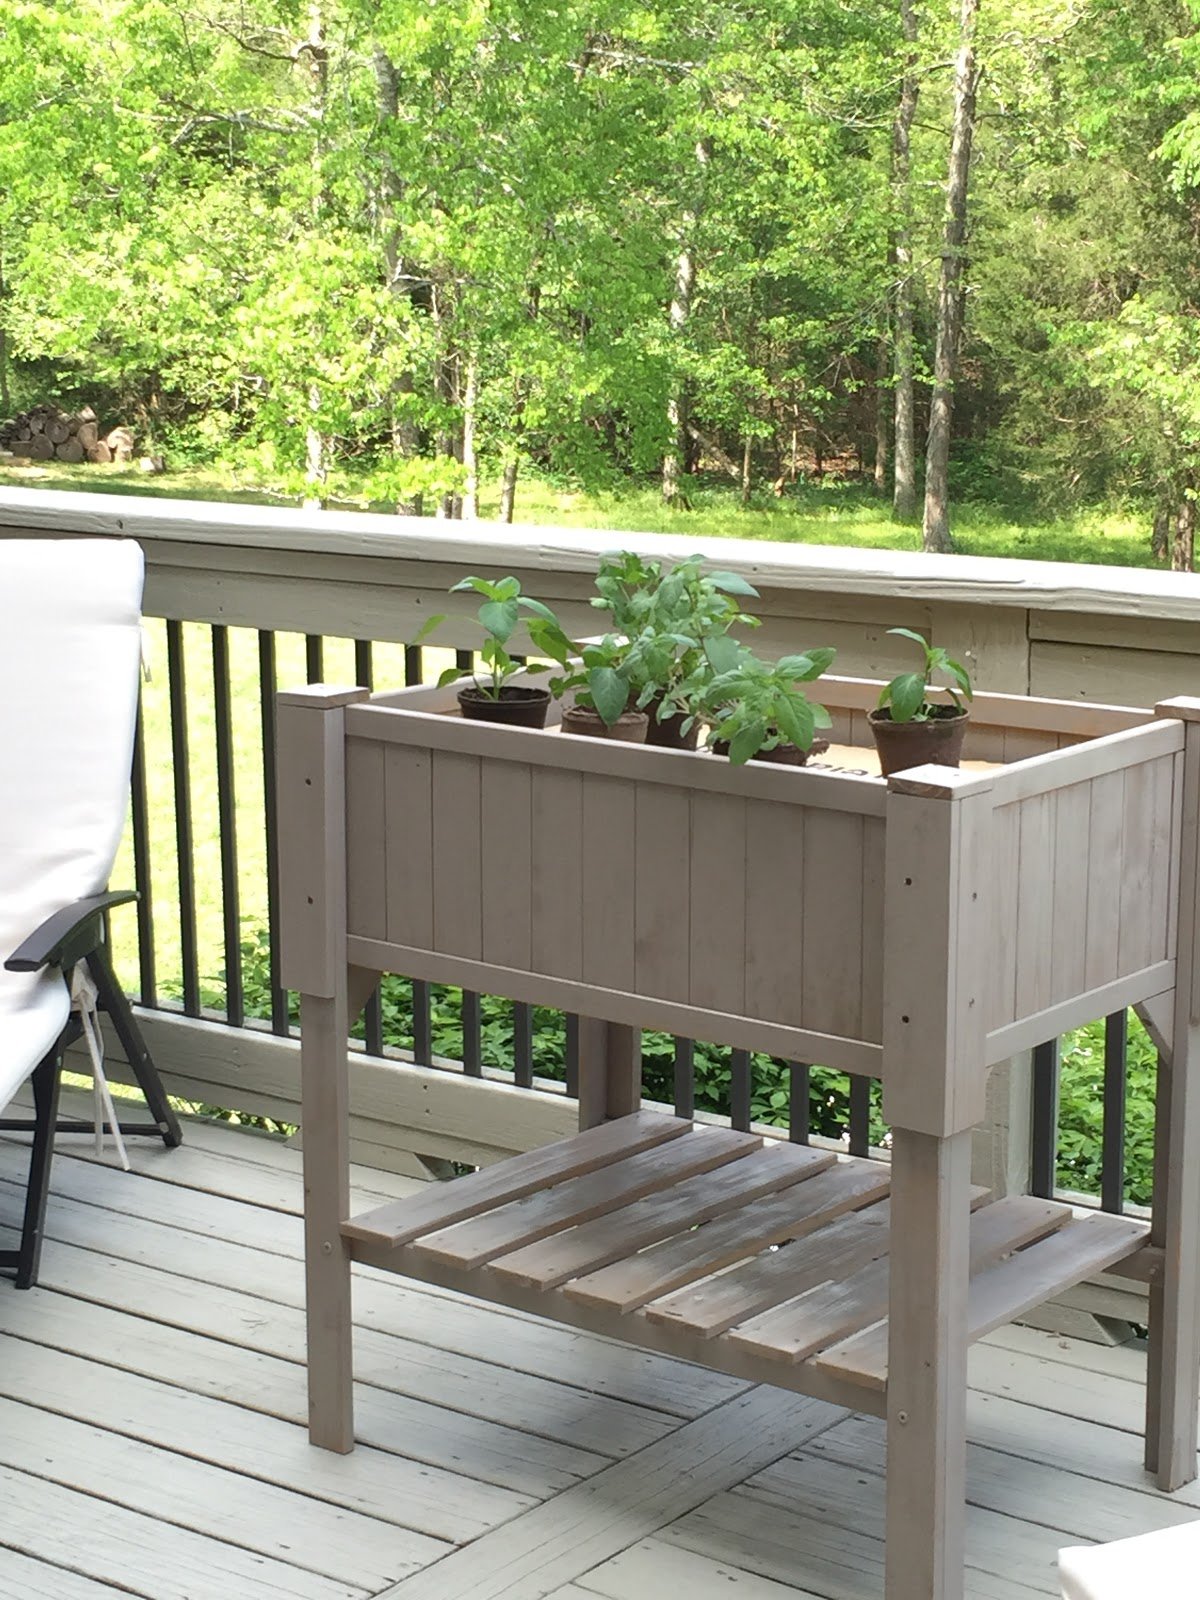 Great herb garden planter on deck